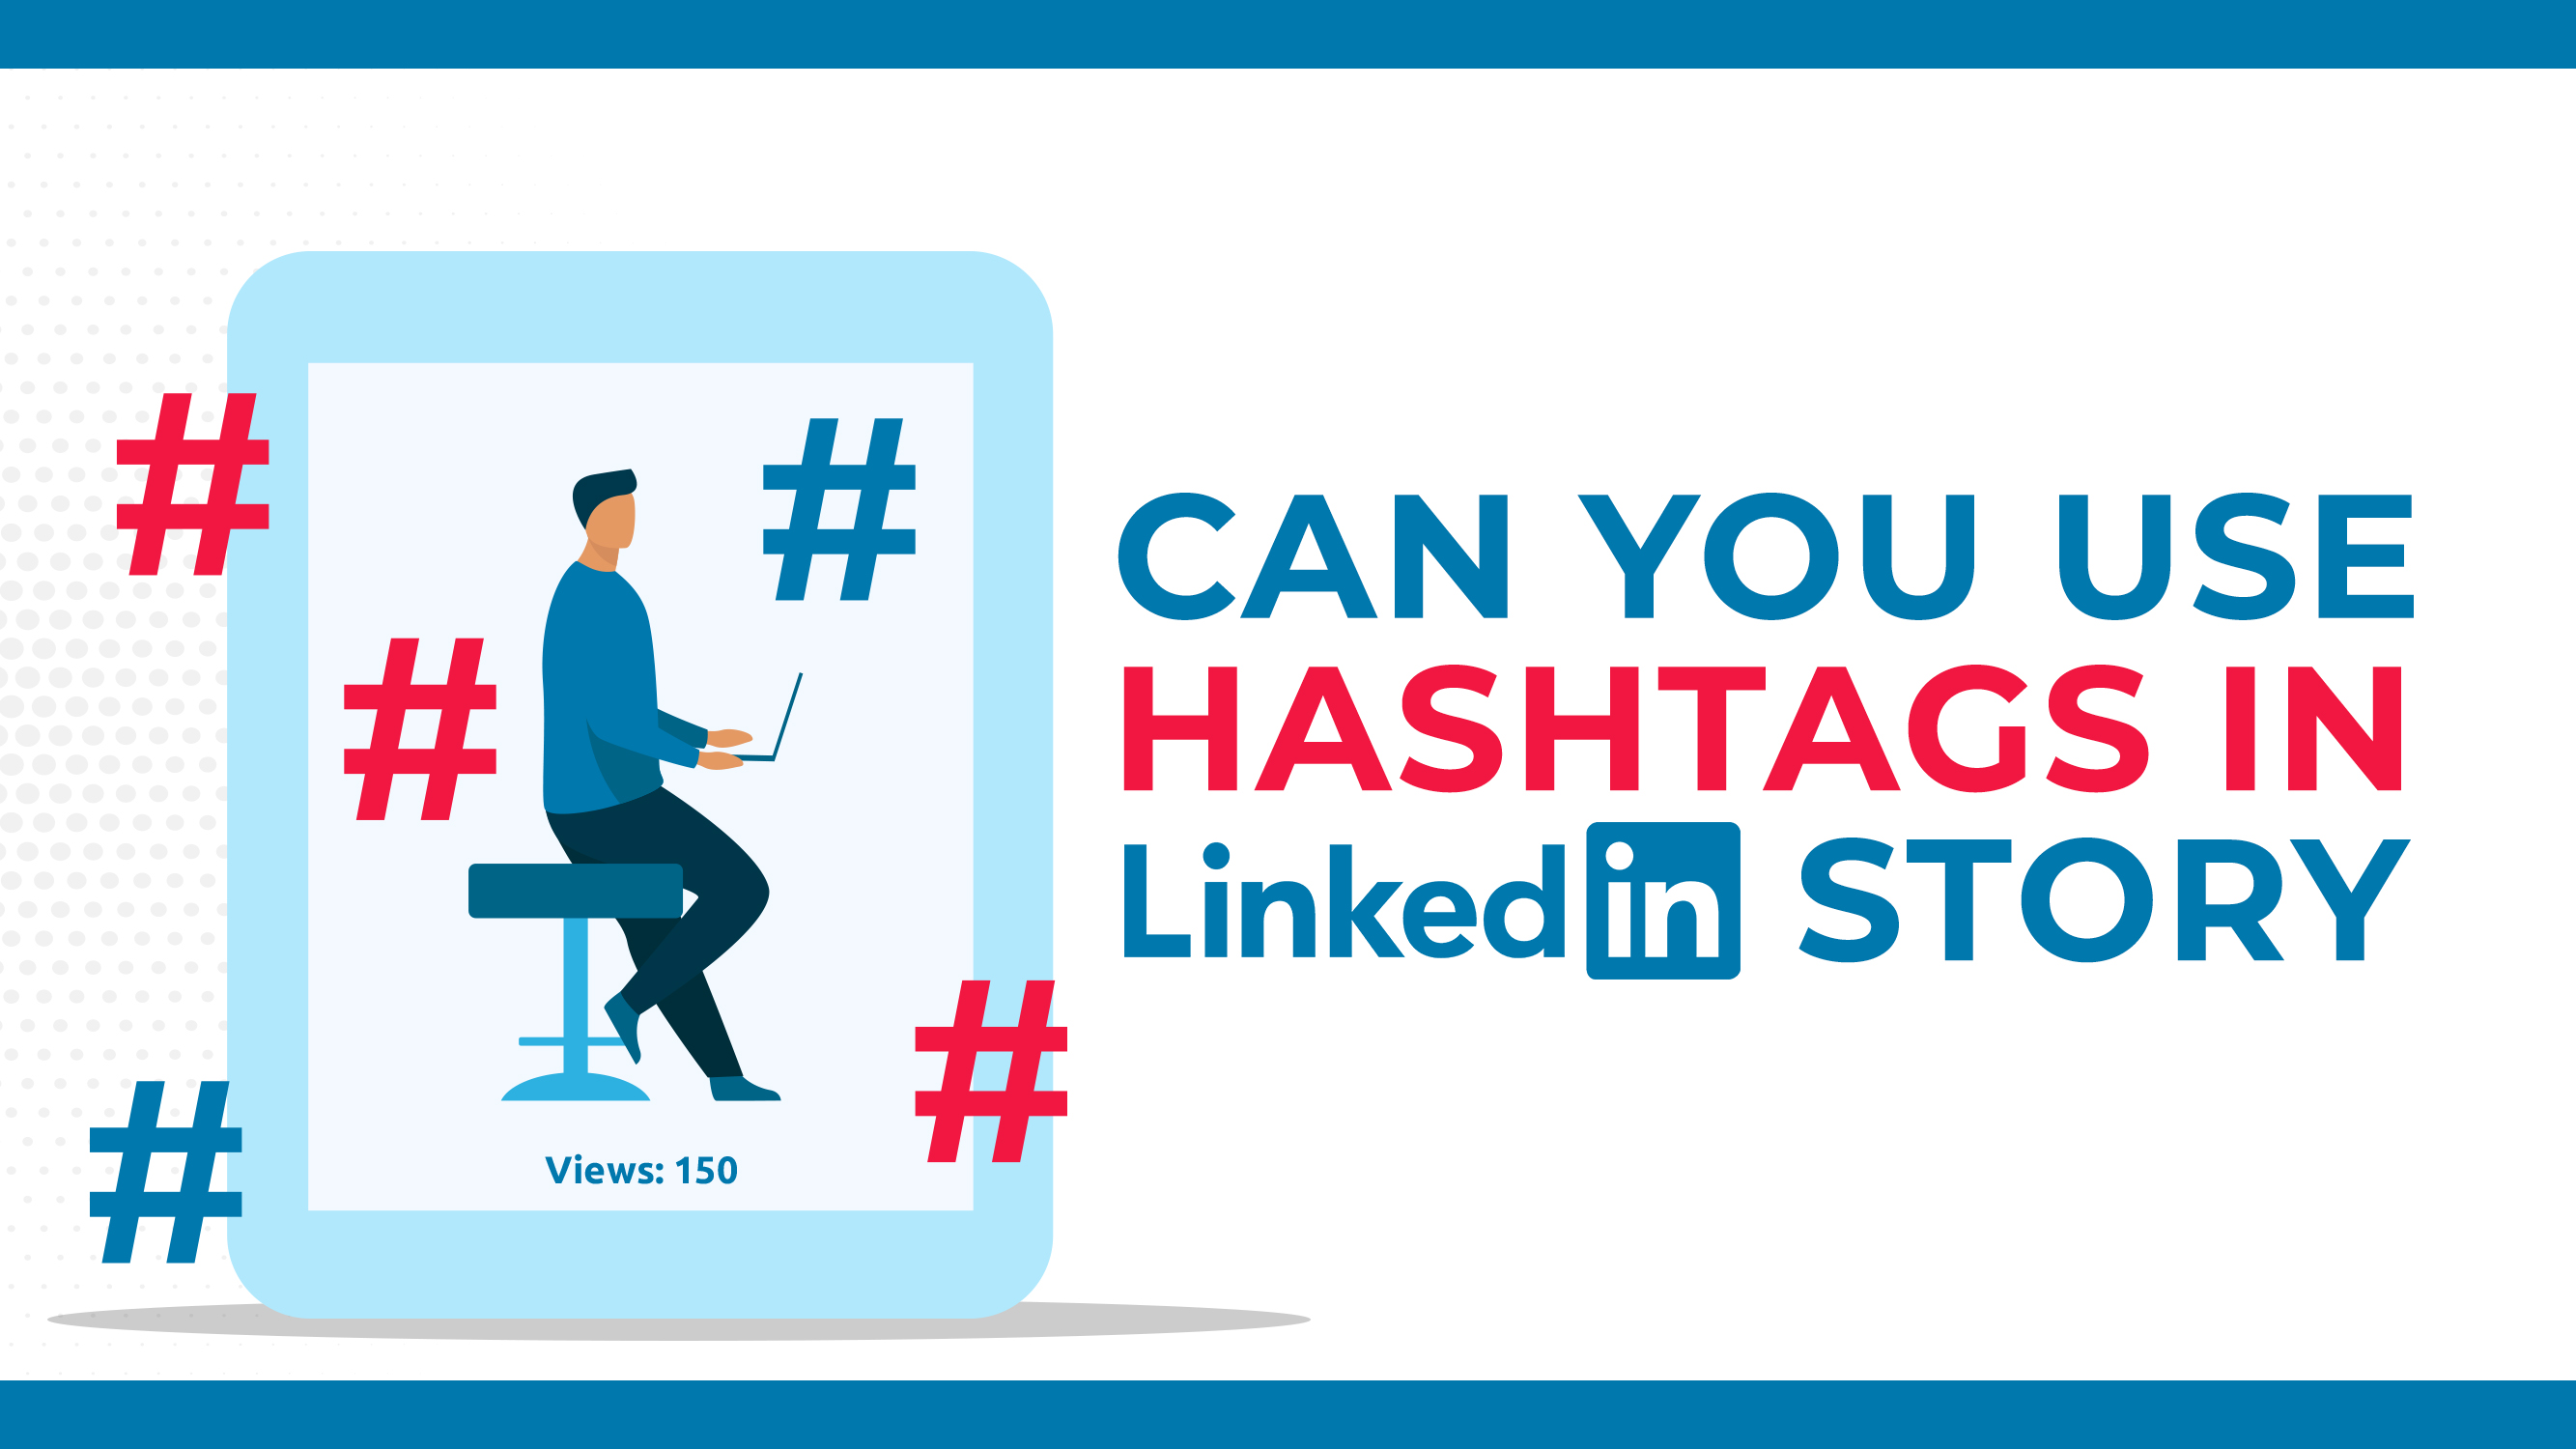 Can You Use Hashtags In LinkedIn Stories?